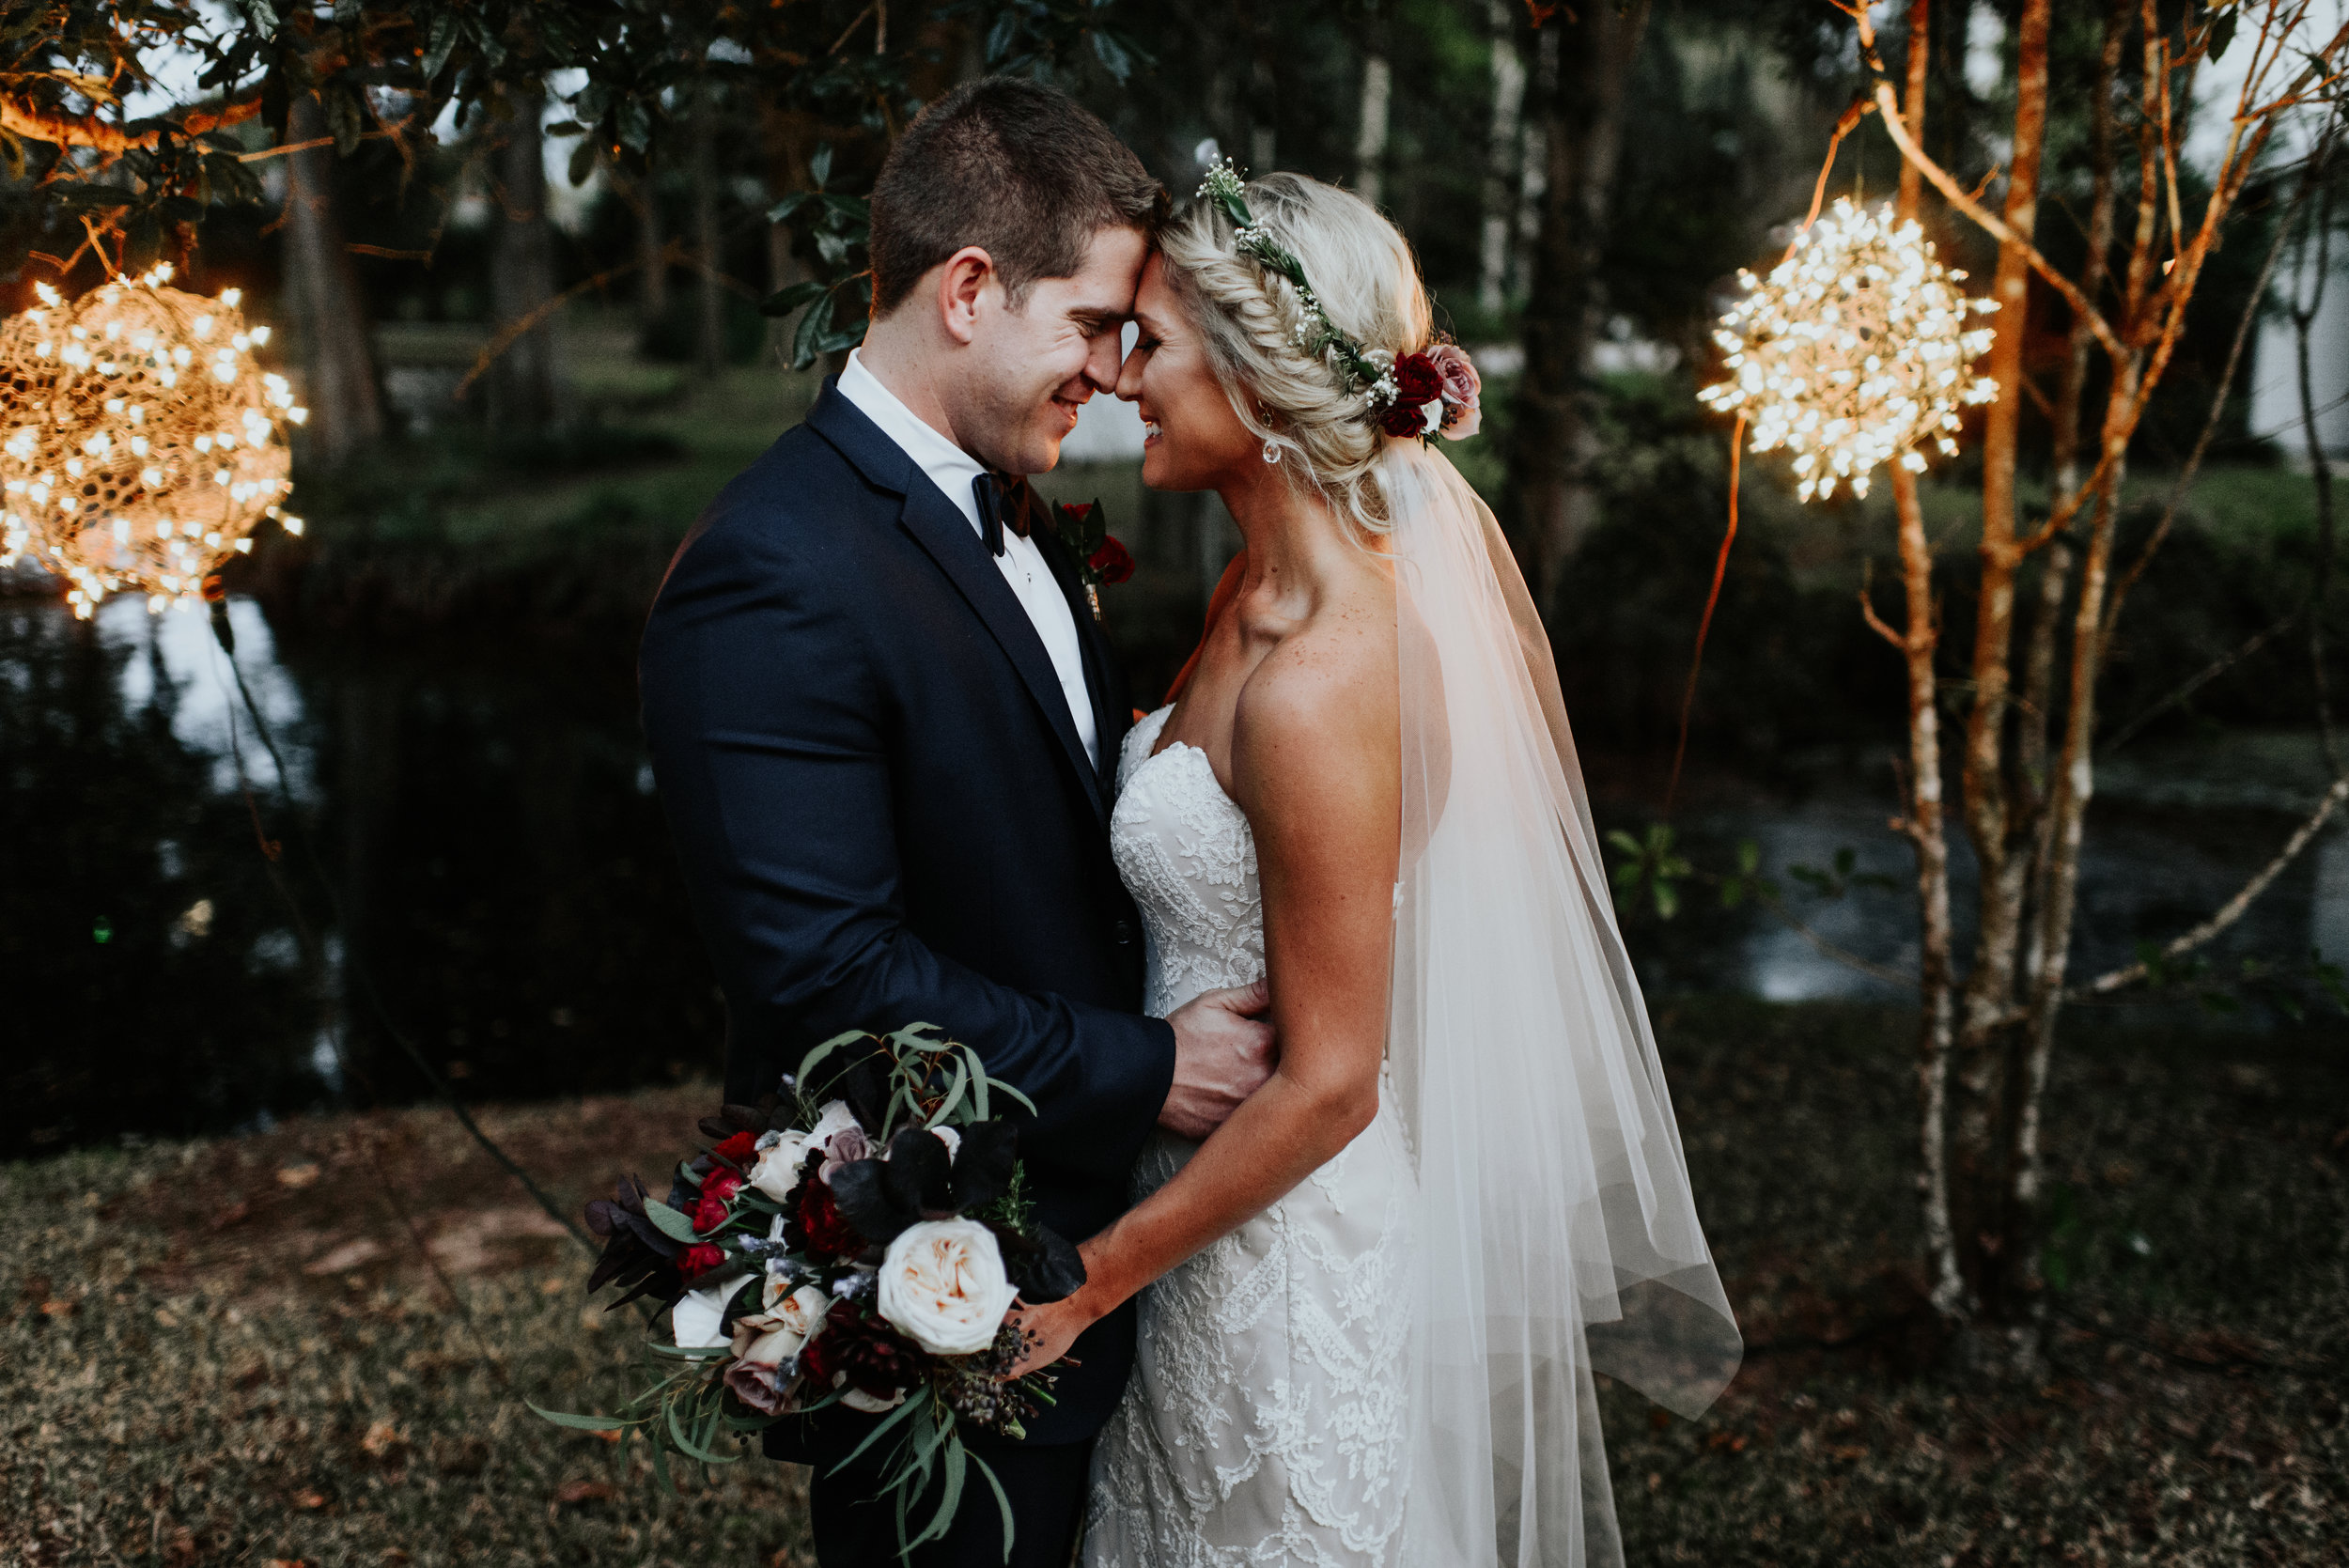 Southern Fete, Southern Wedding, Root Floral Design, Bride and Groom Moment, Hannah Mulligan Photography